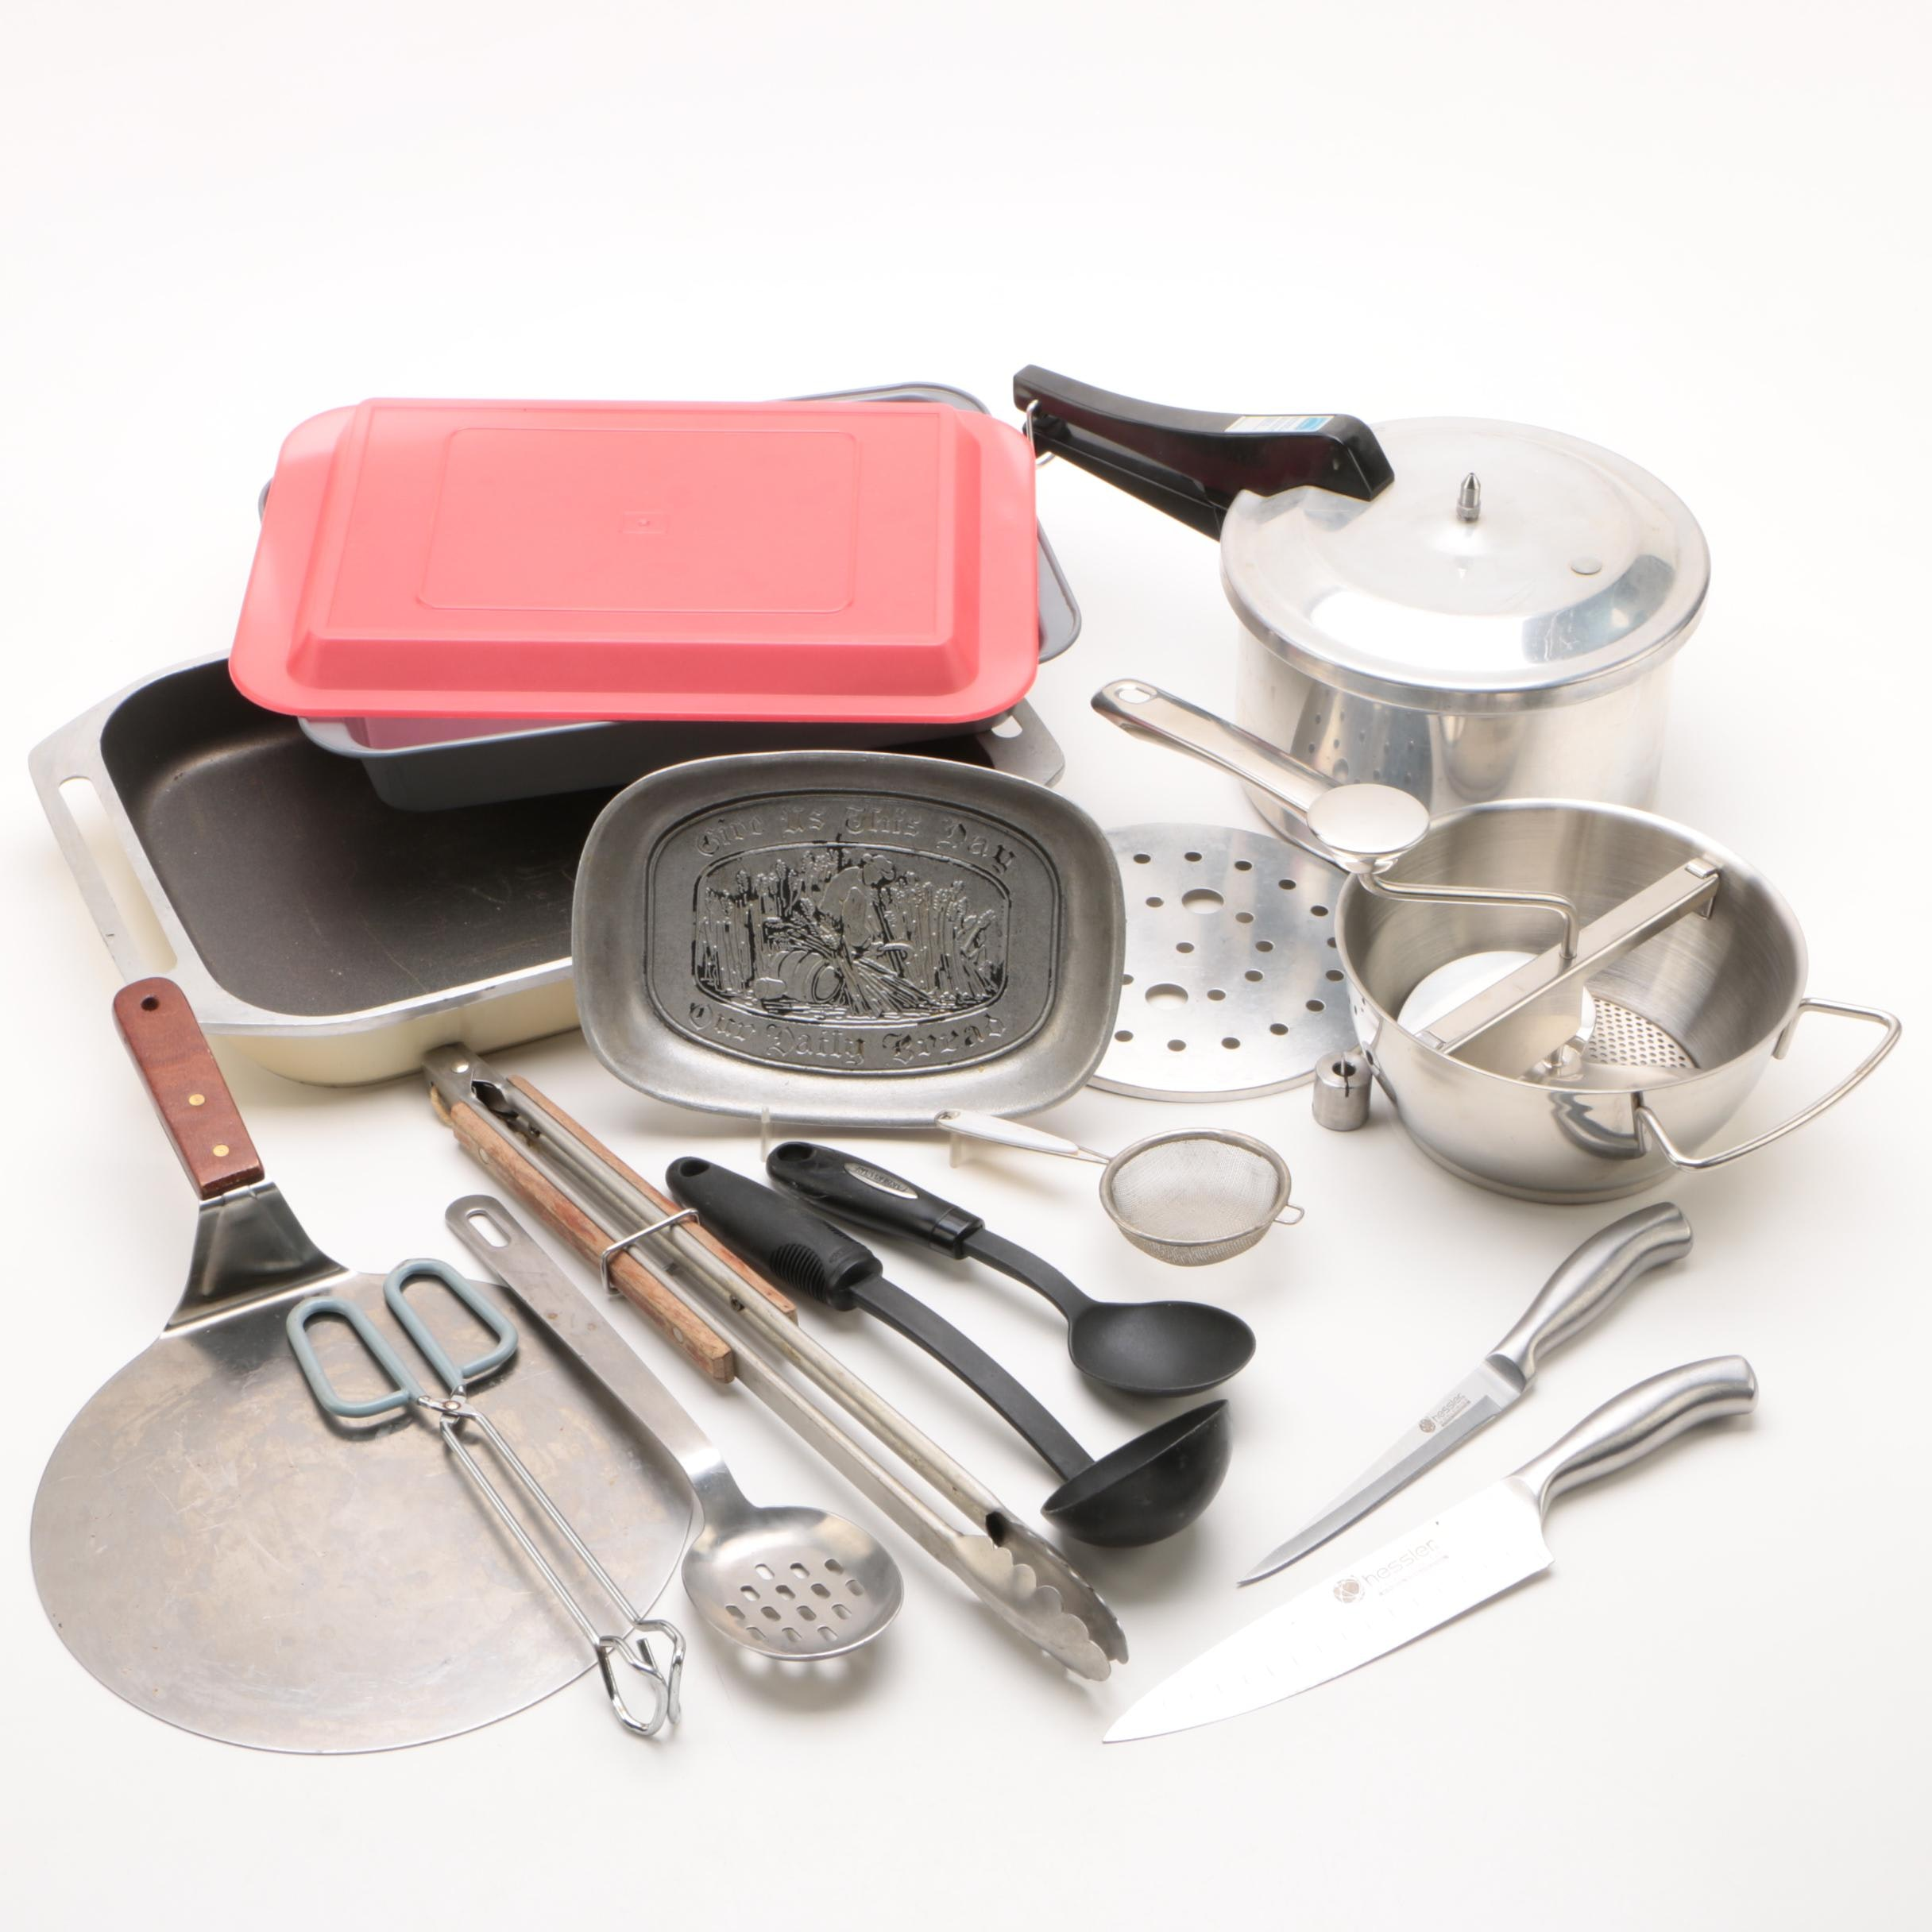 Hessler Knives and Assorted Cooking Collection